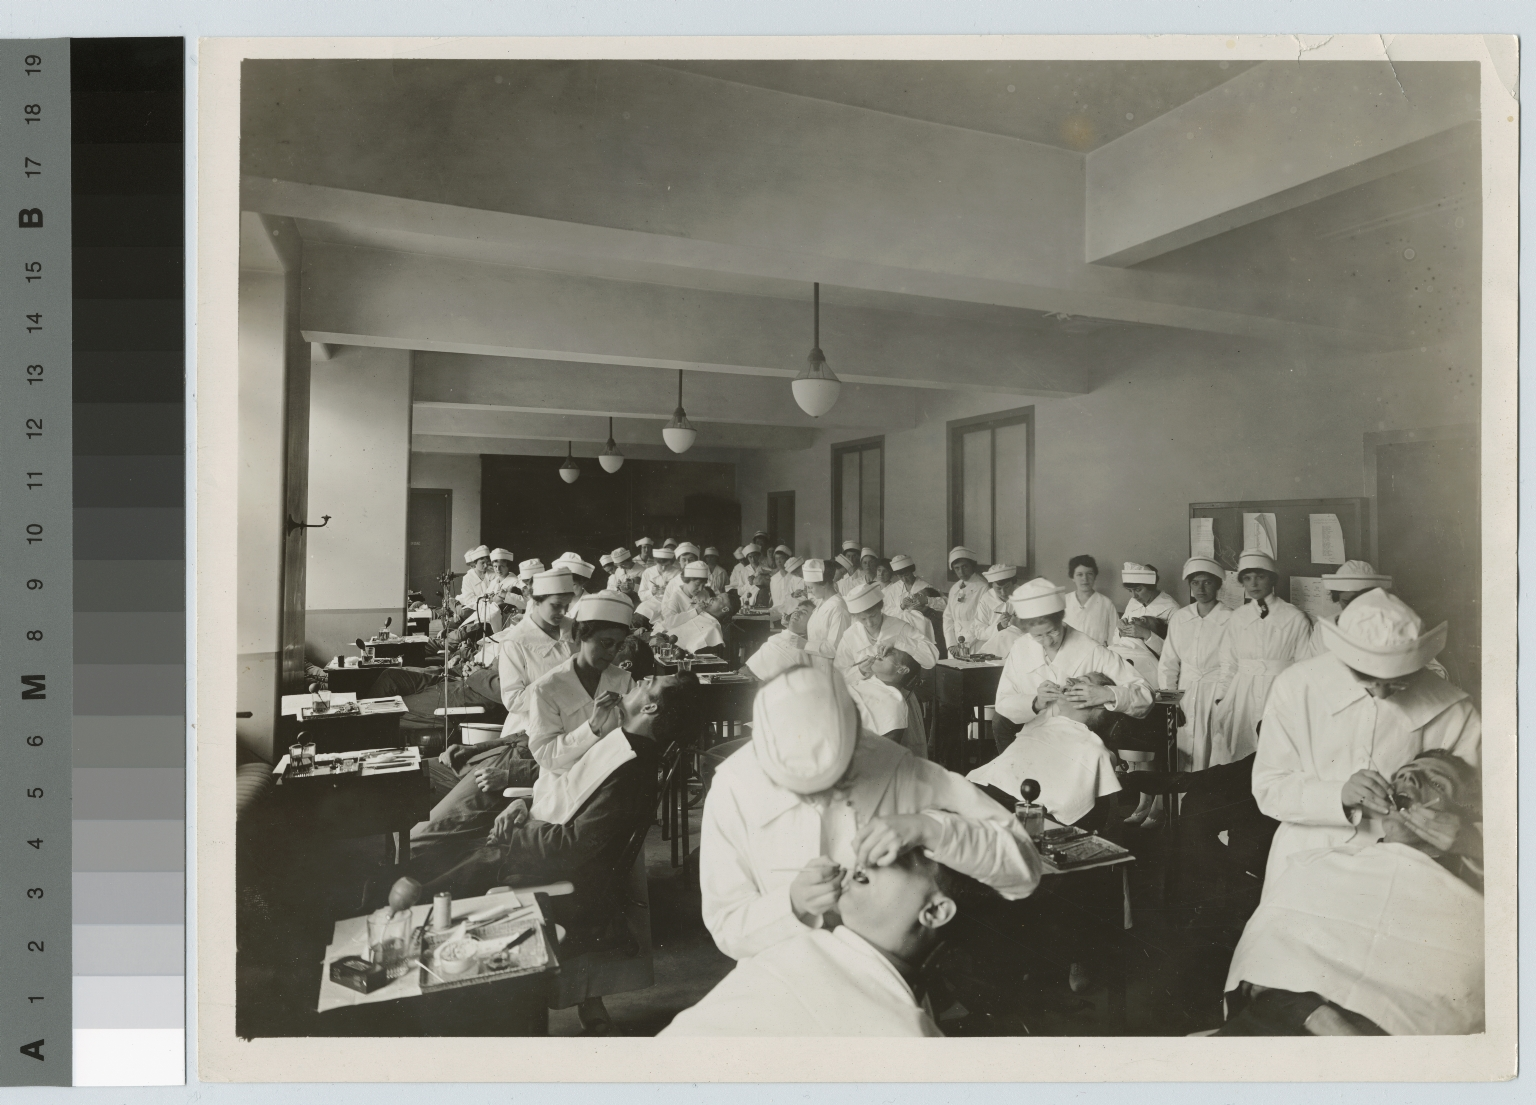 Dental students practicing on patients, Rochester Athenaeum and Mechanics Institute [1930-1940]